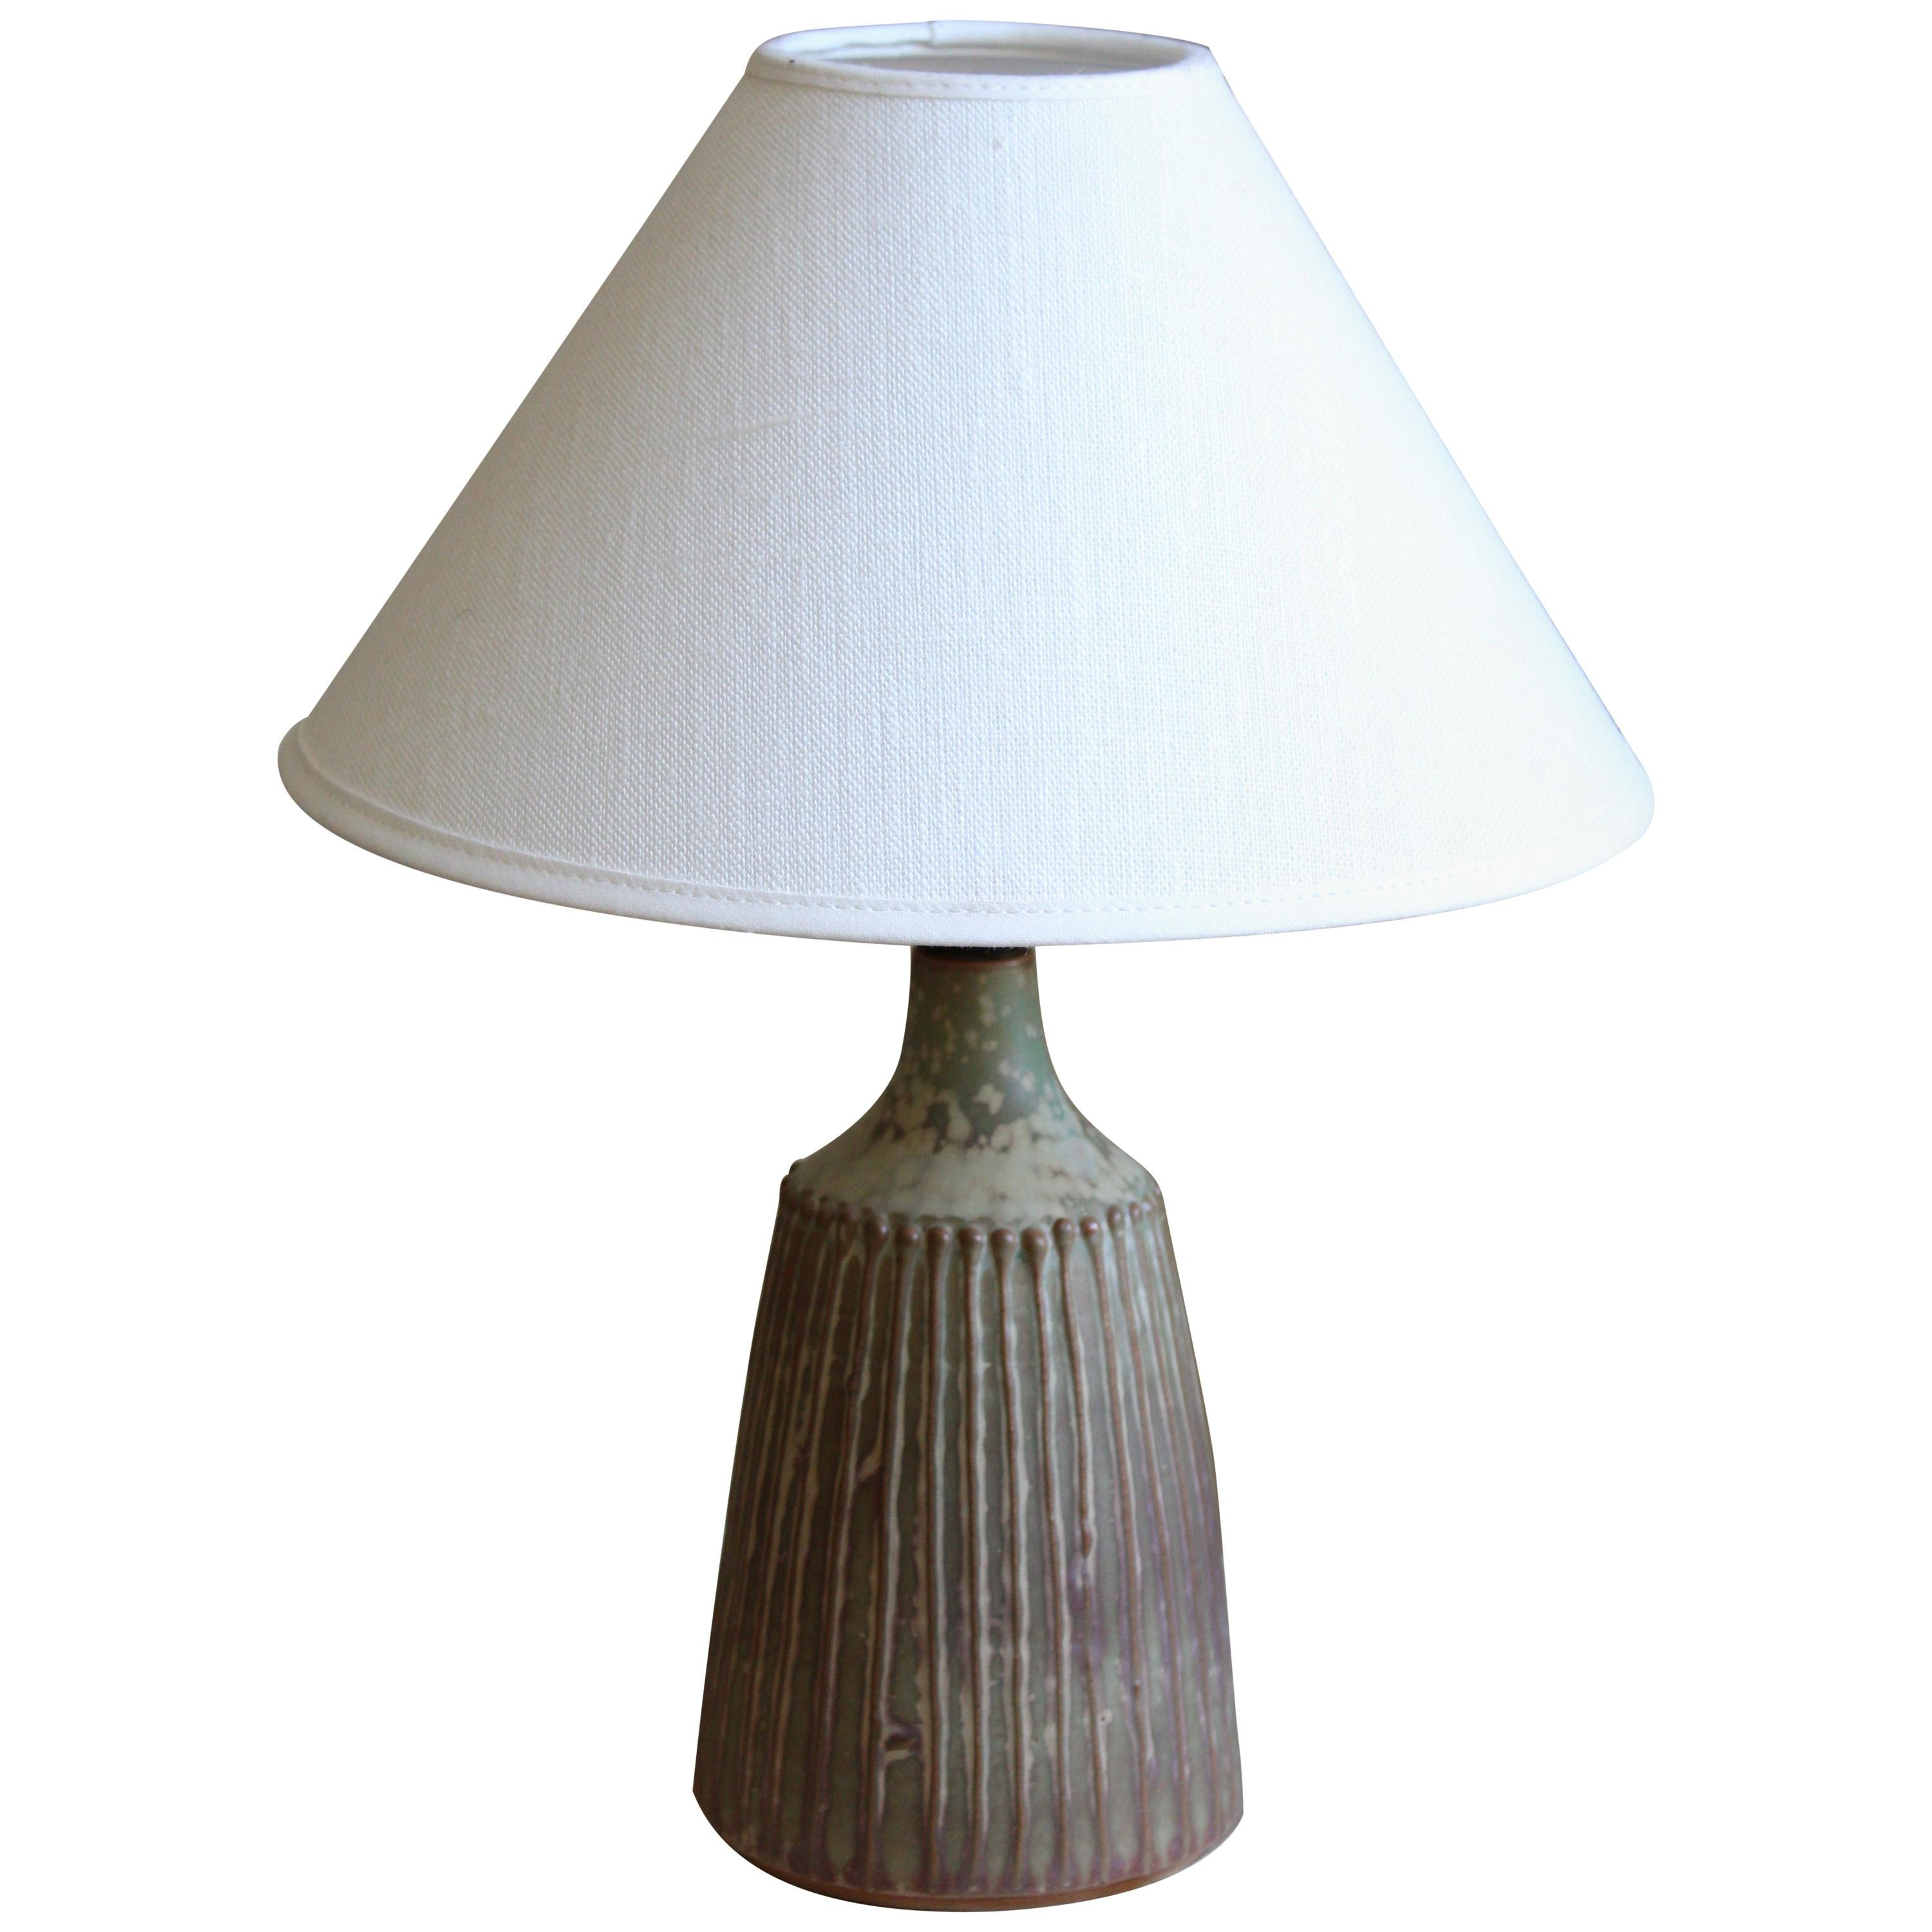 Rolf Palm, Table Lamp, Glazed Stoneware, Mölle, Sweden, 1960s